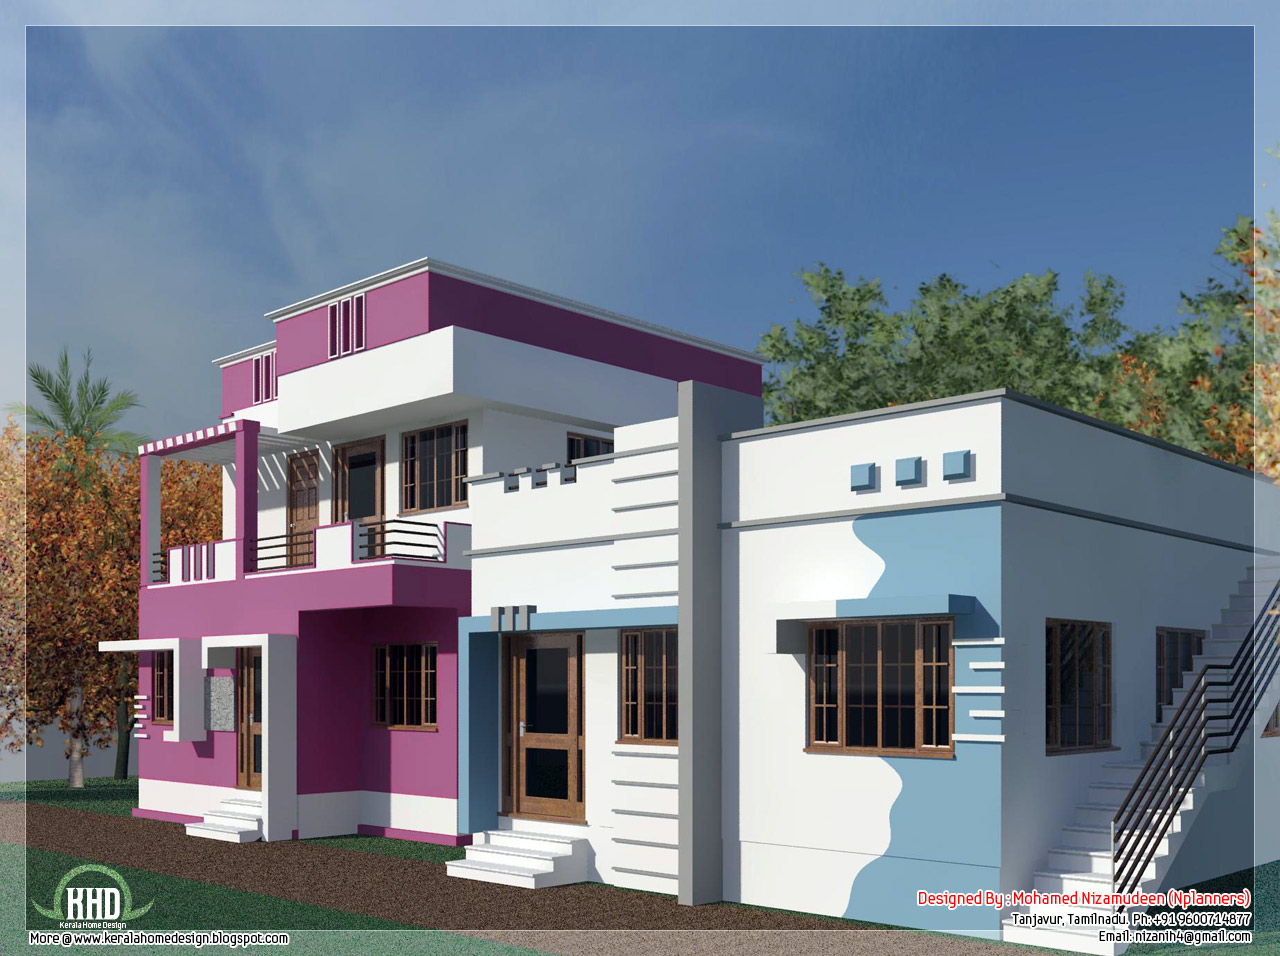 Tamilnadu model home design in 3000 kerala home for South indian small house designs